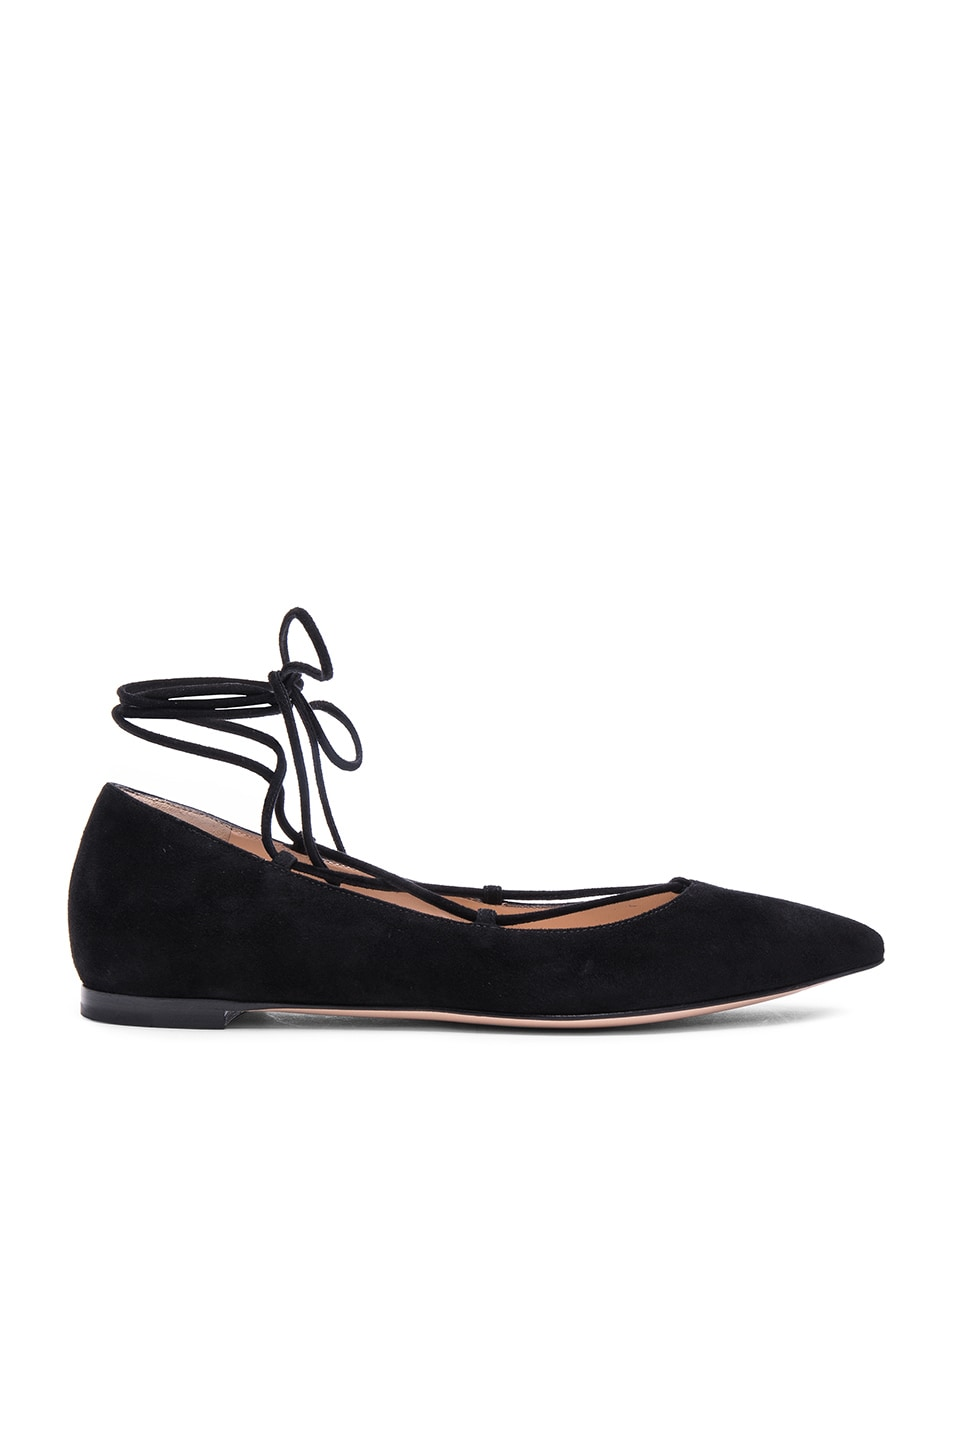 Image 1 of Gianvito Rossi Suede Femi Flats in Black